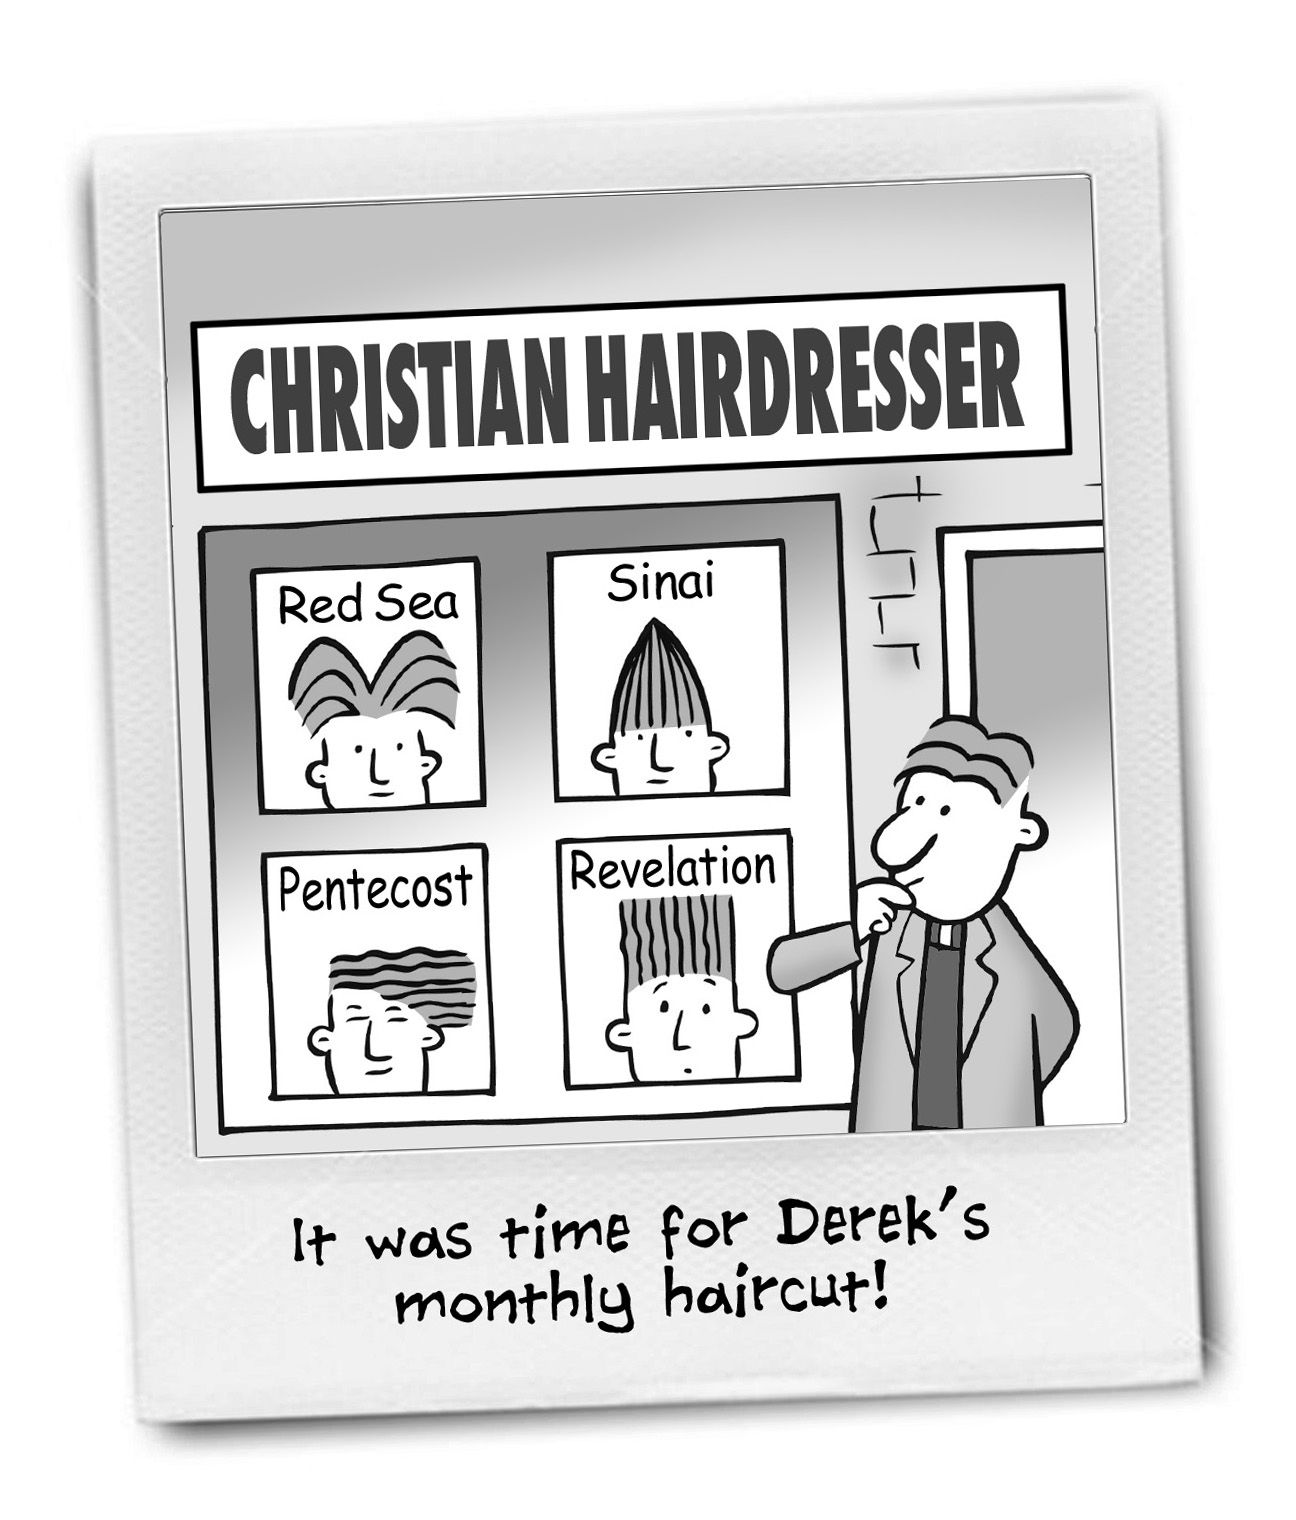 Have you heard of Christian Hairdressing? | Christian ...